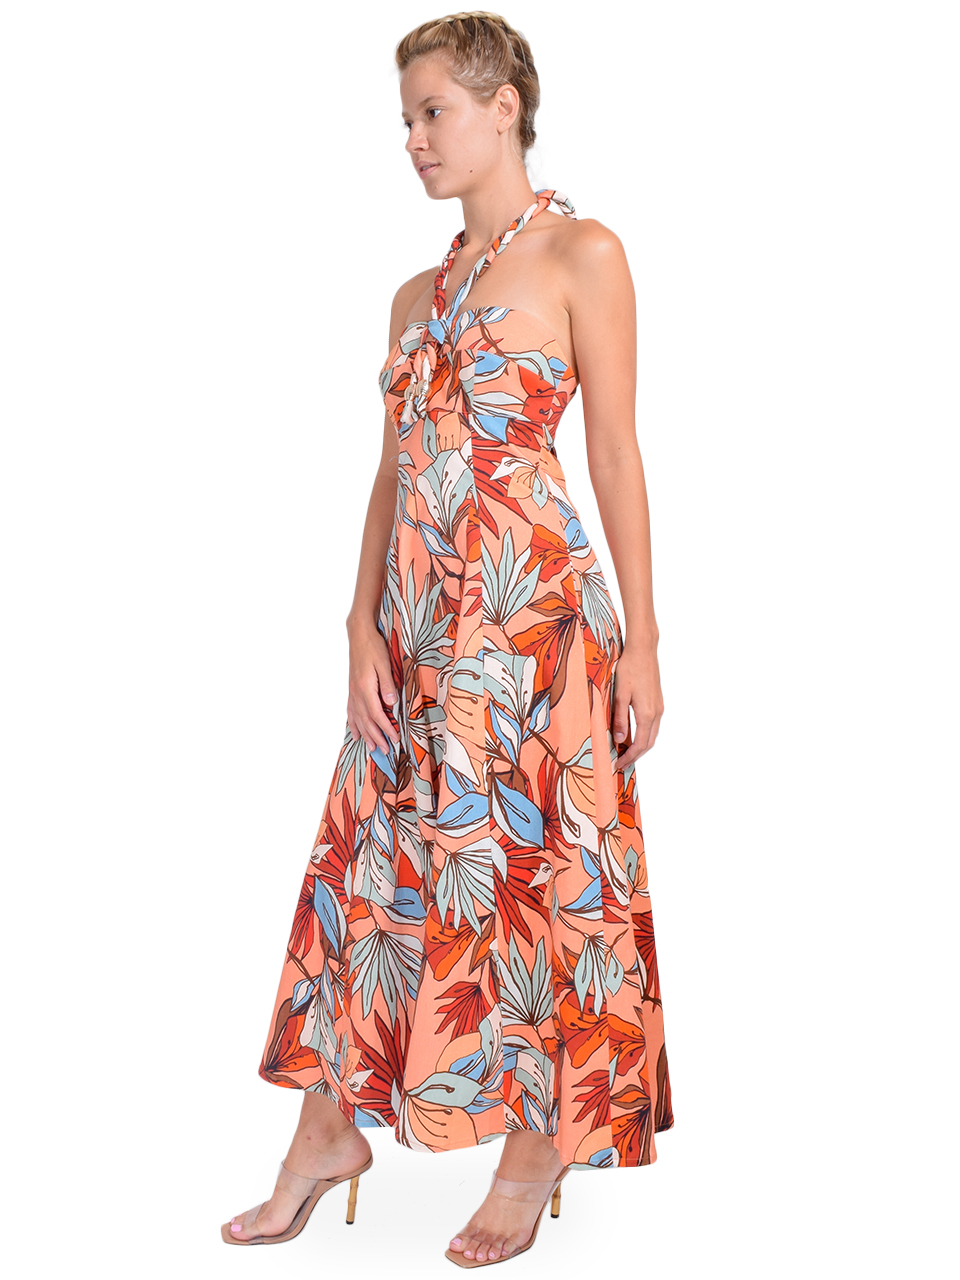 NICHOLAS Tina Dress in Tarama Deco Floral Side View